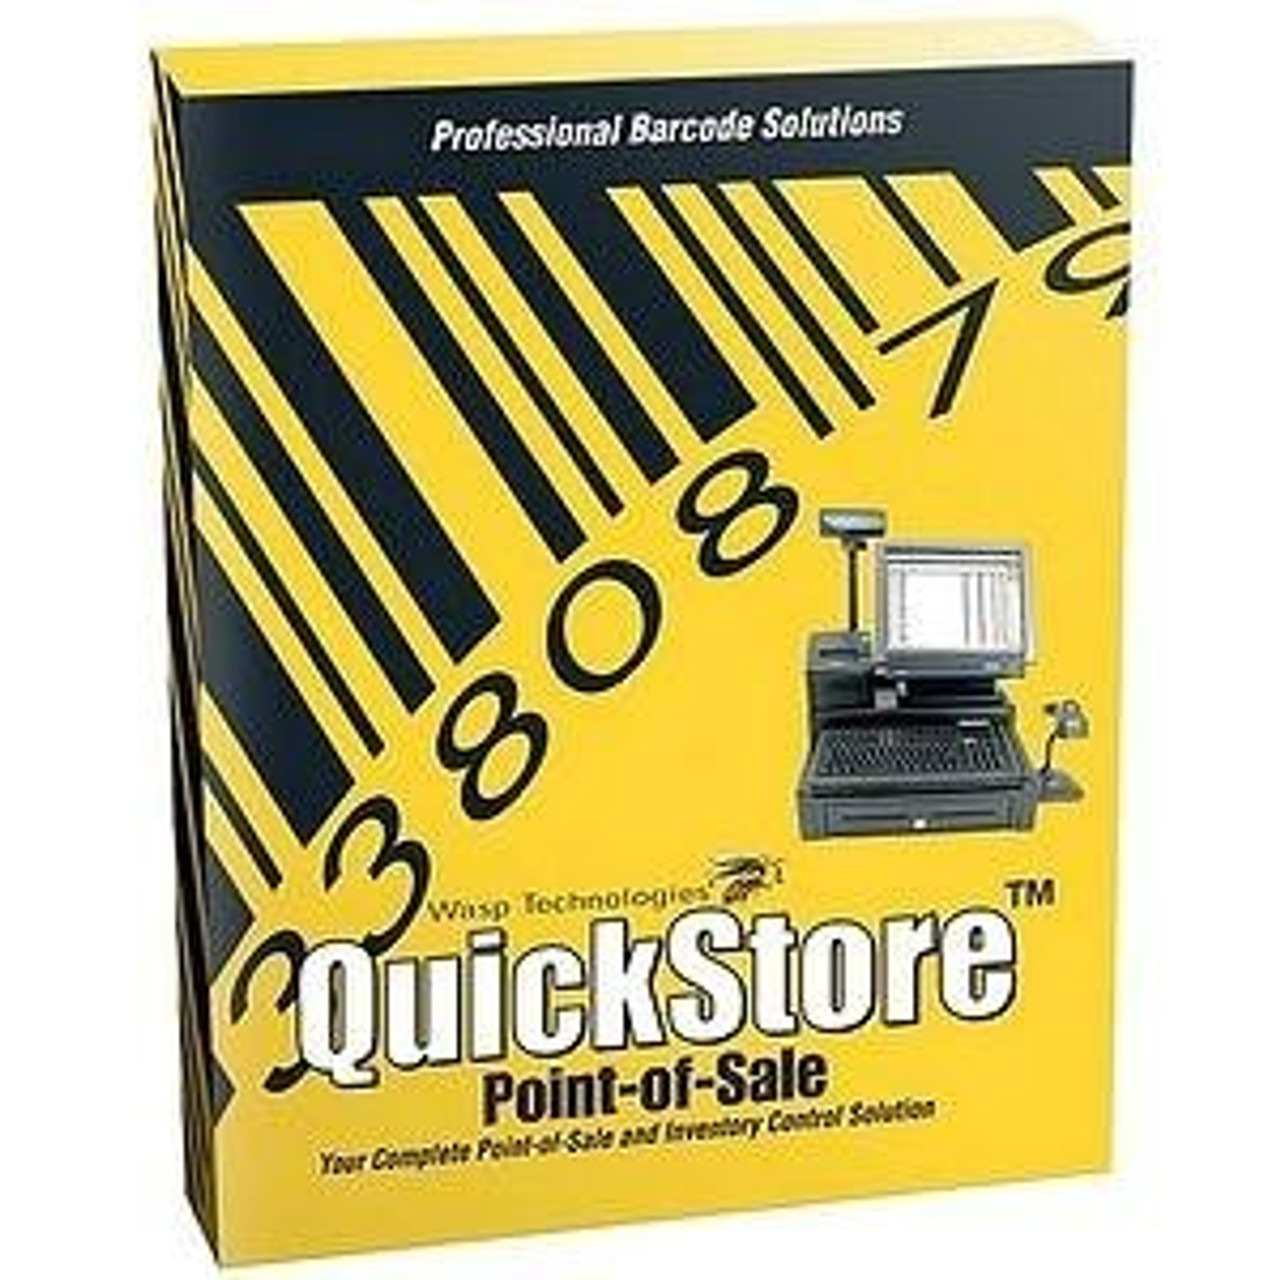 Wasp POS Retail Software, Quickstore Professional